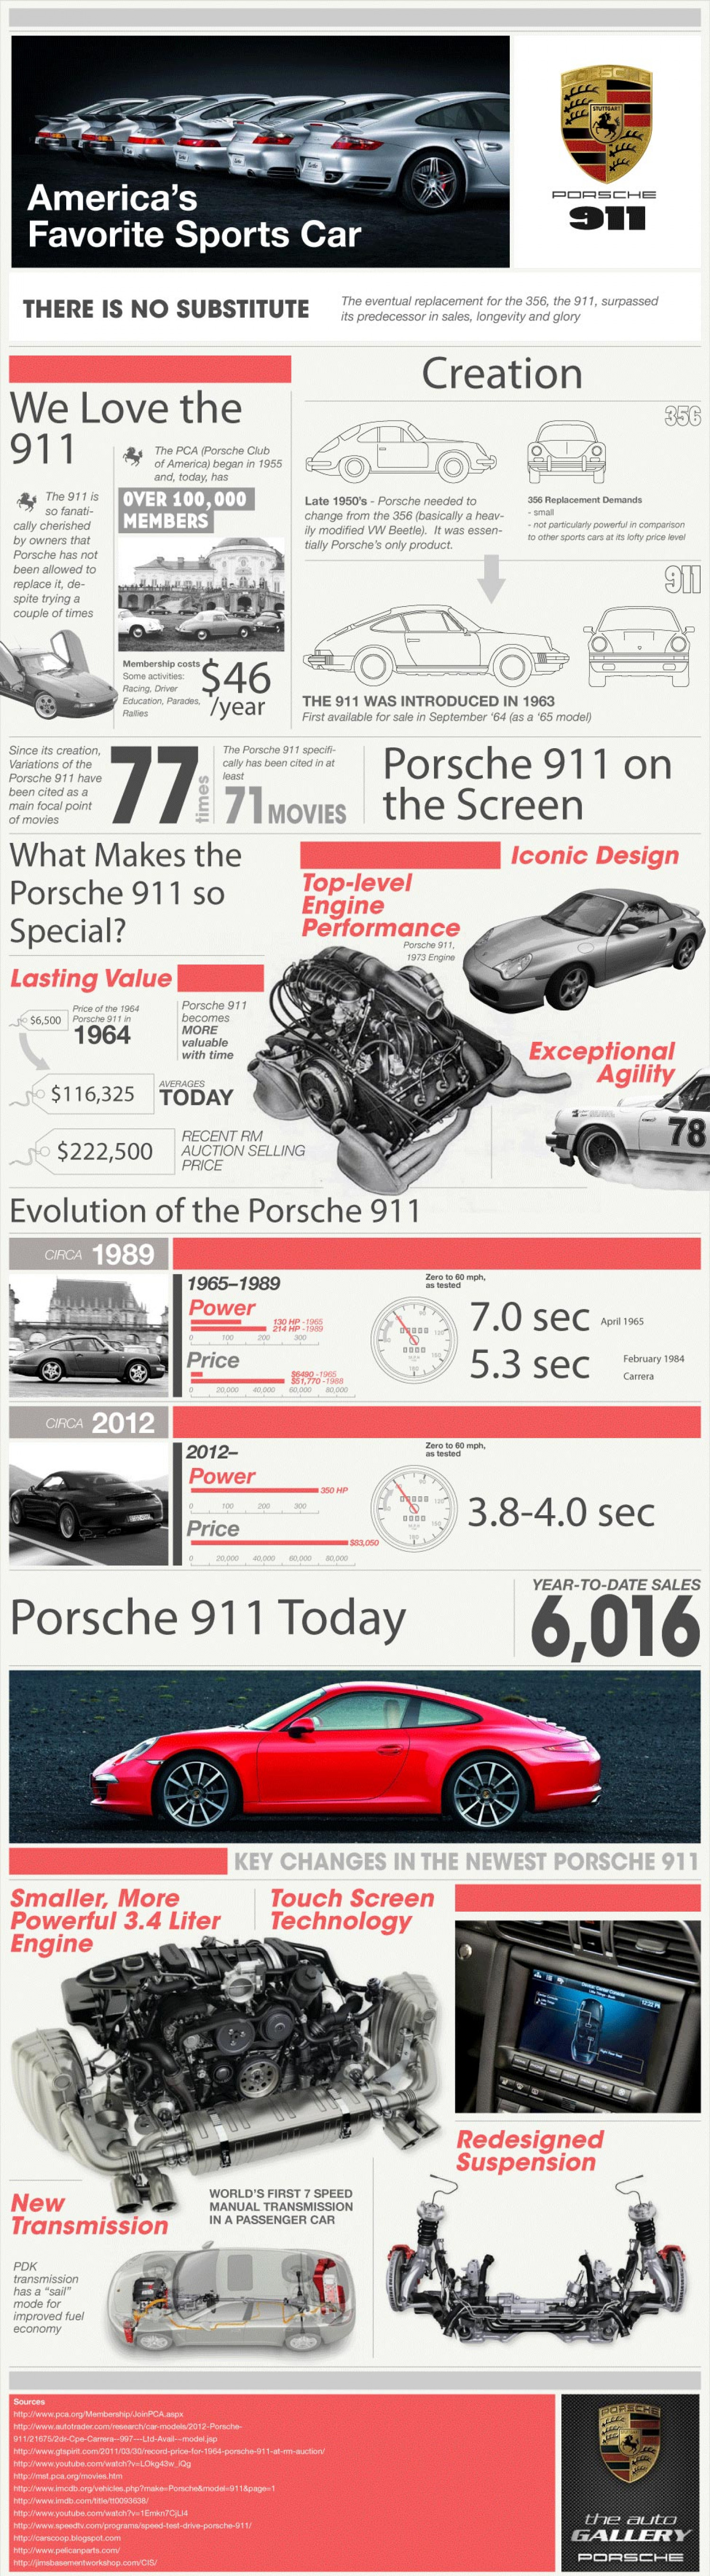 America's Favorite Sports Car: Porsche 911 Infographic